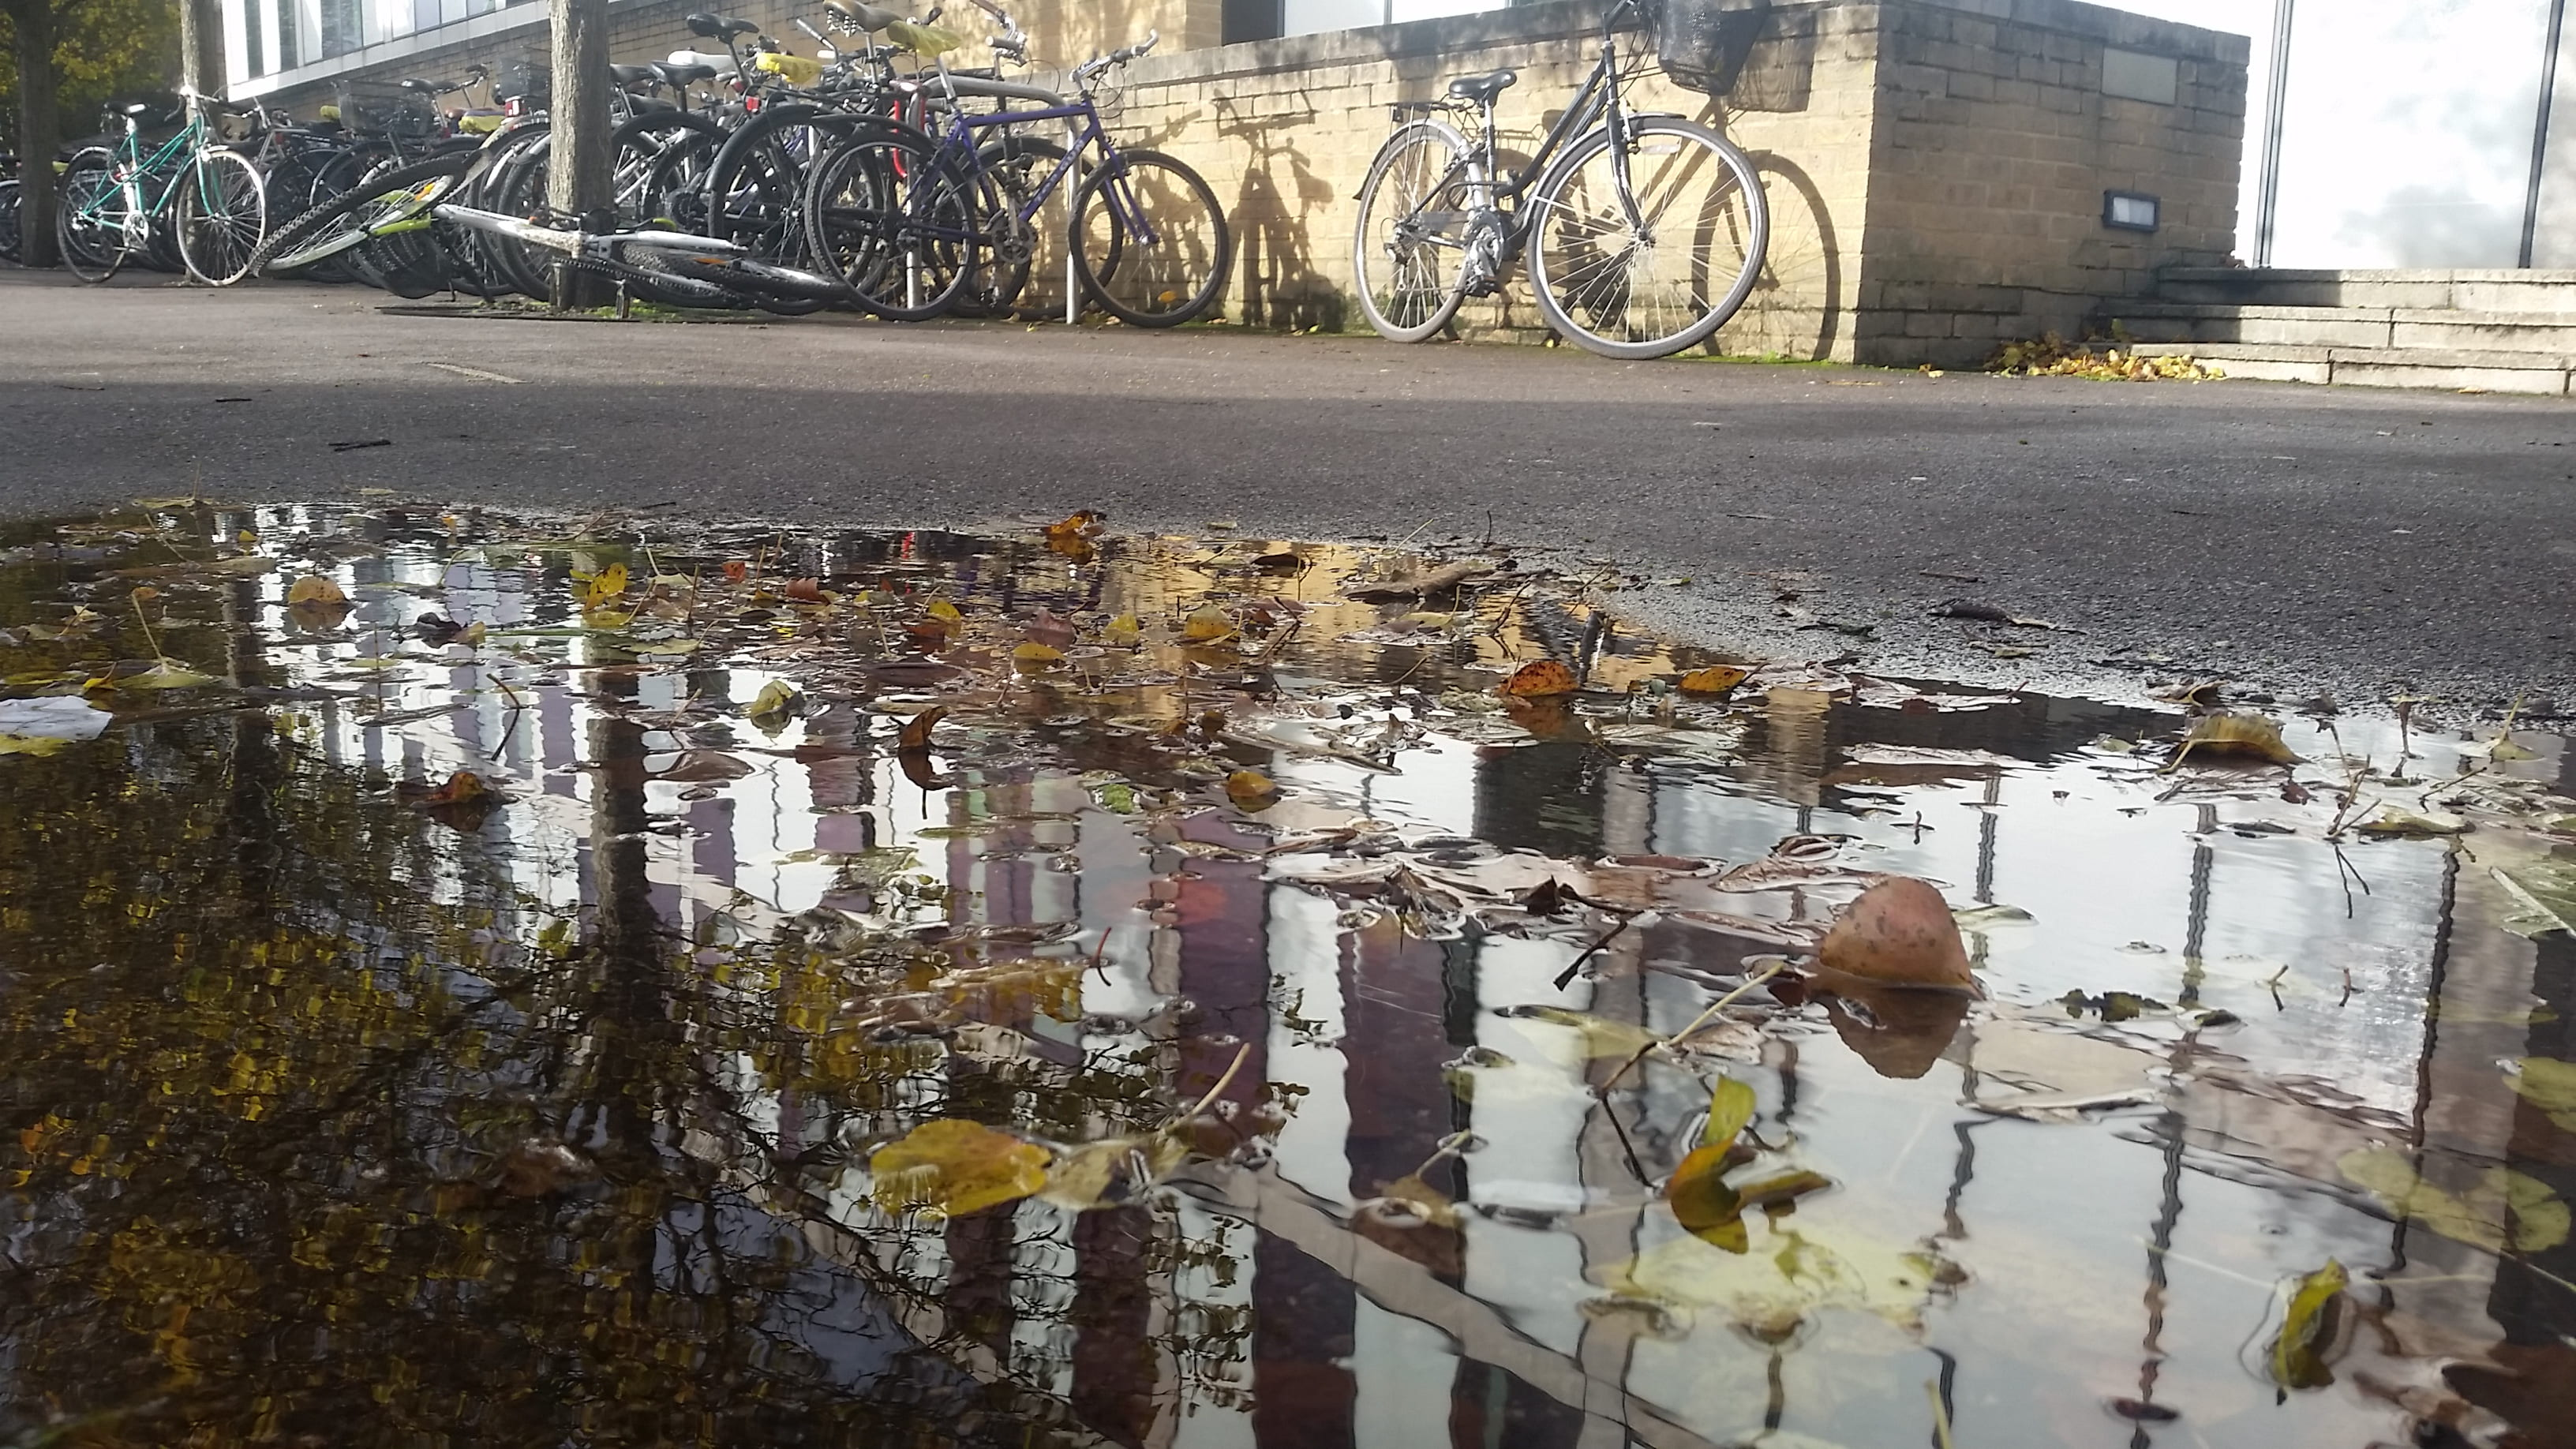 Parked bicycles beside a puddle near the Social Sciences Library, University of Oxford